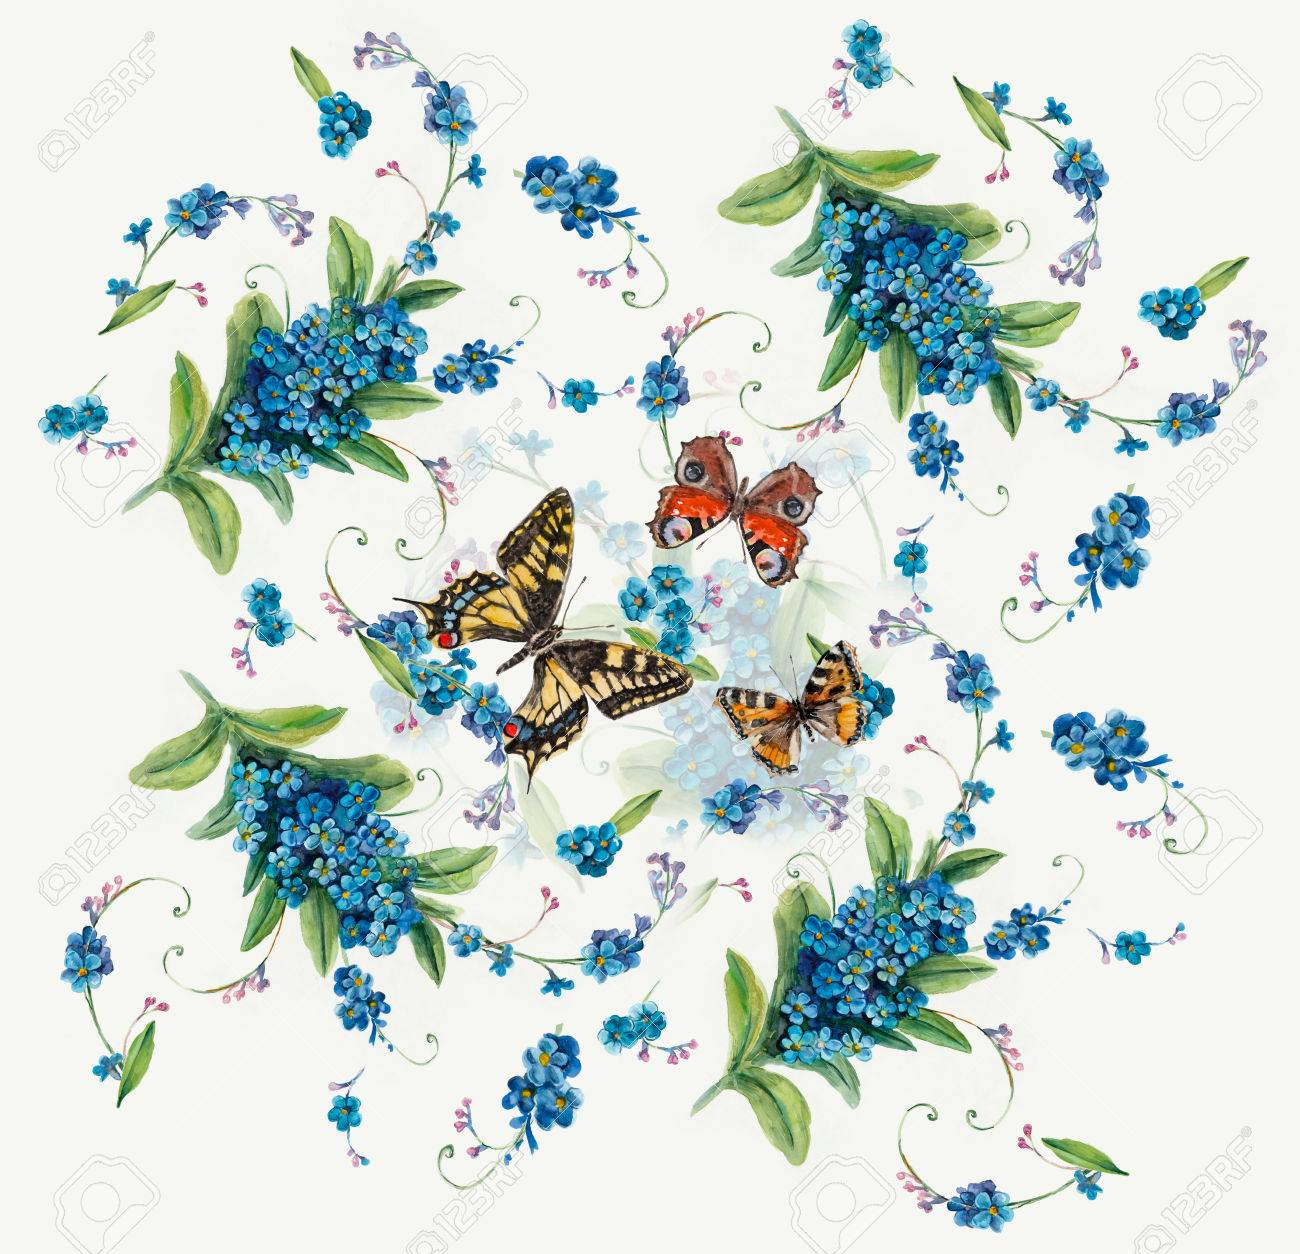 1300x1254 Forget Me Not. Flowers And Butterflies Background, Watercolor